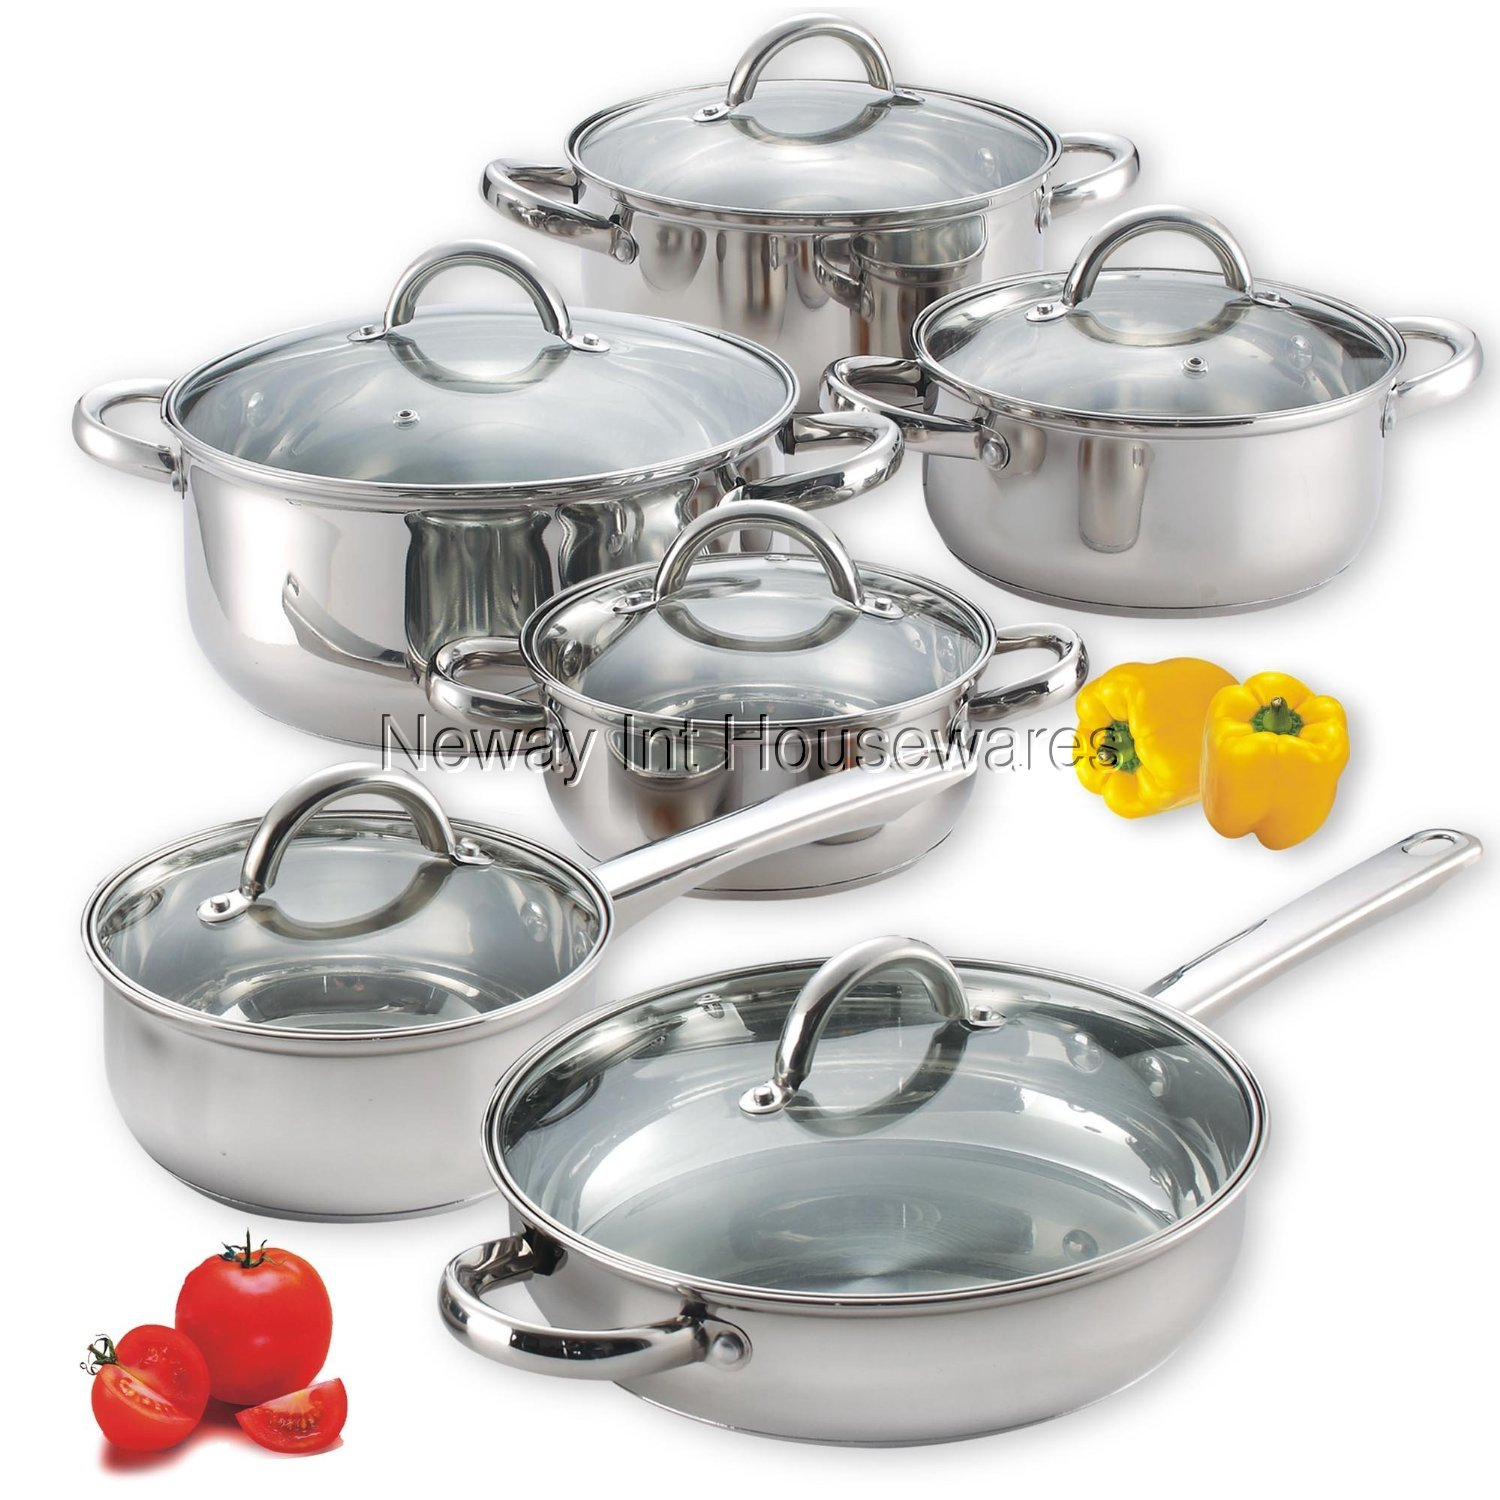 Cook N Home 12-Piece Stainless Steel Cookware Set - Walmart.com